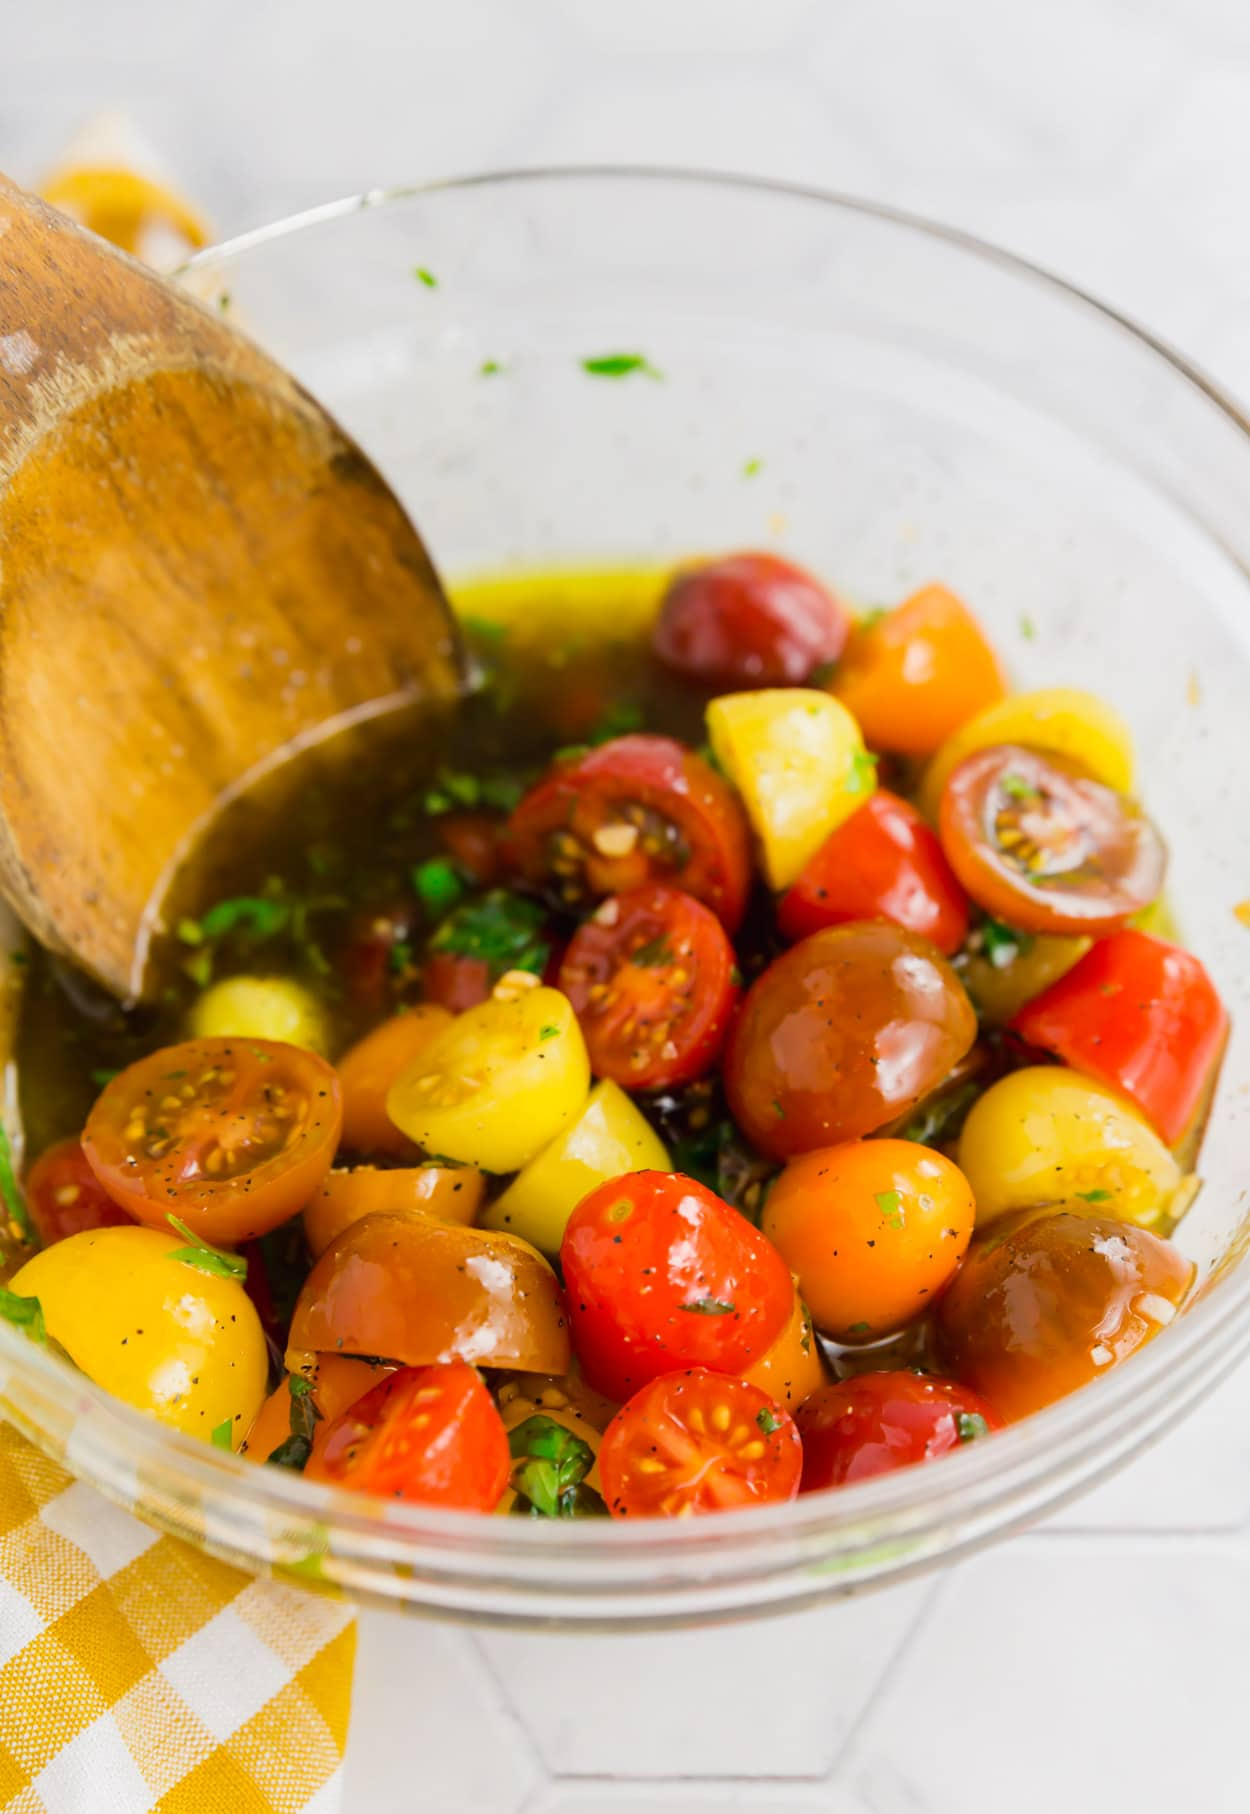 A photo of a mixing bowl with colorful cherry tomatoes, olive oil, balsamic vinegar and fresh basil ready to be mixed.